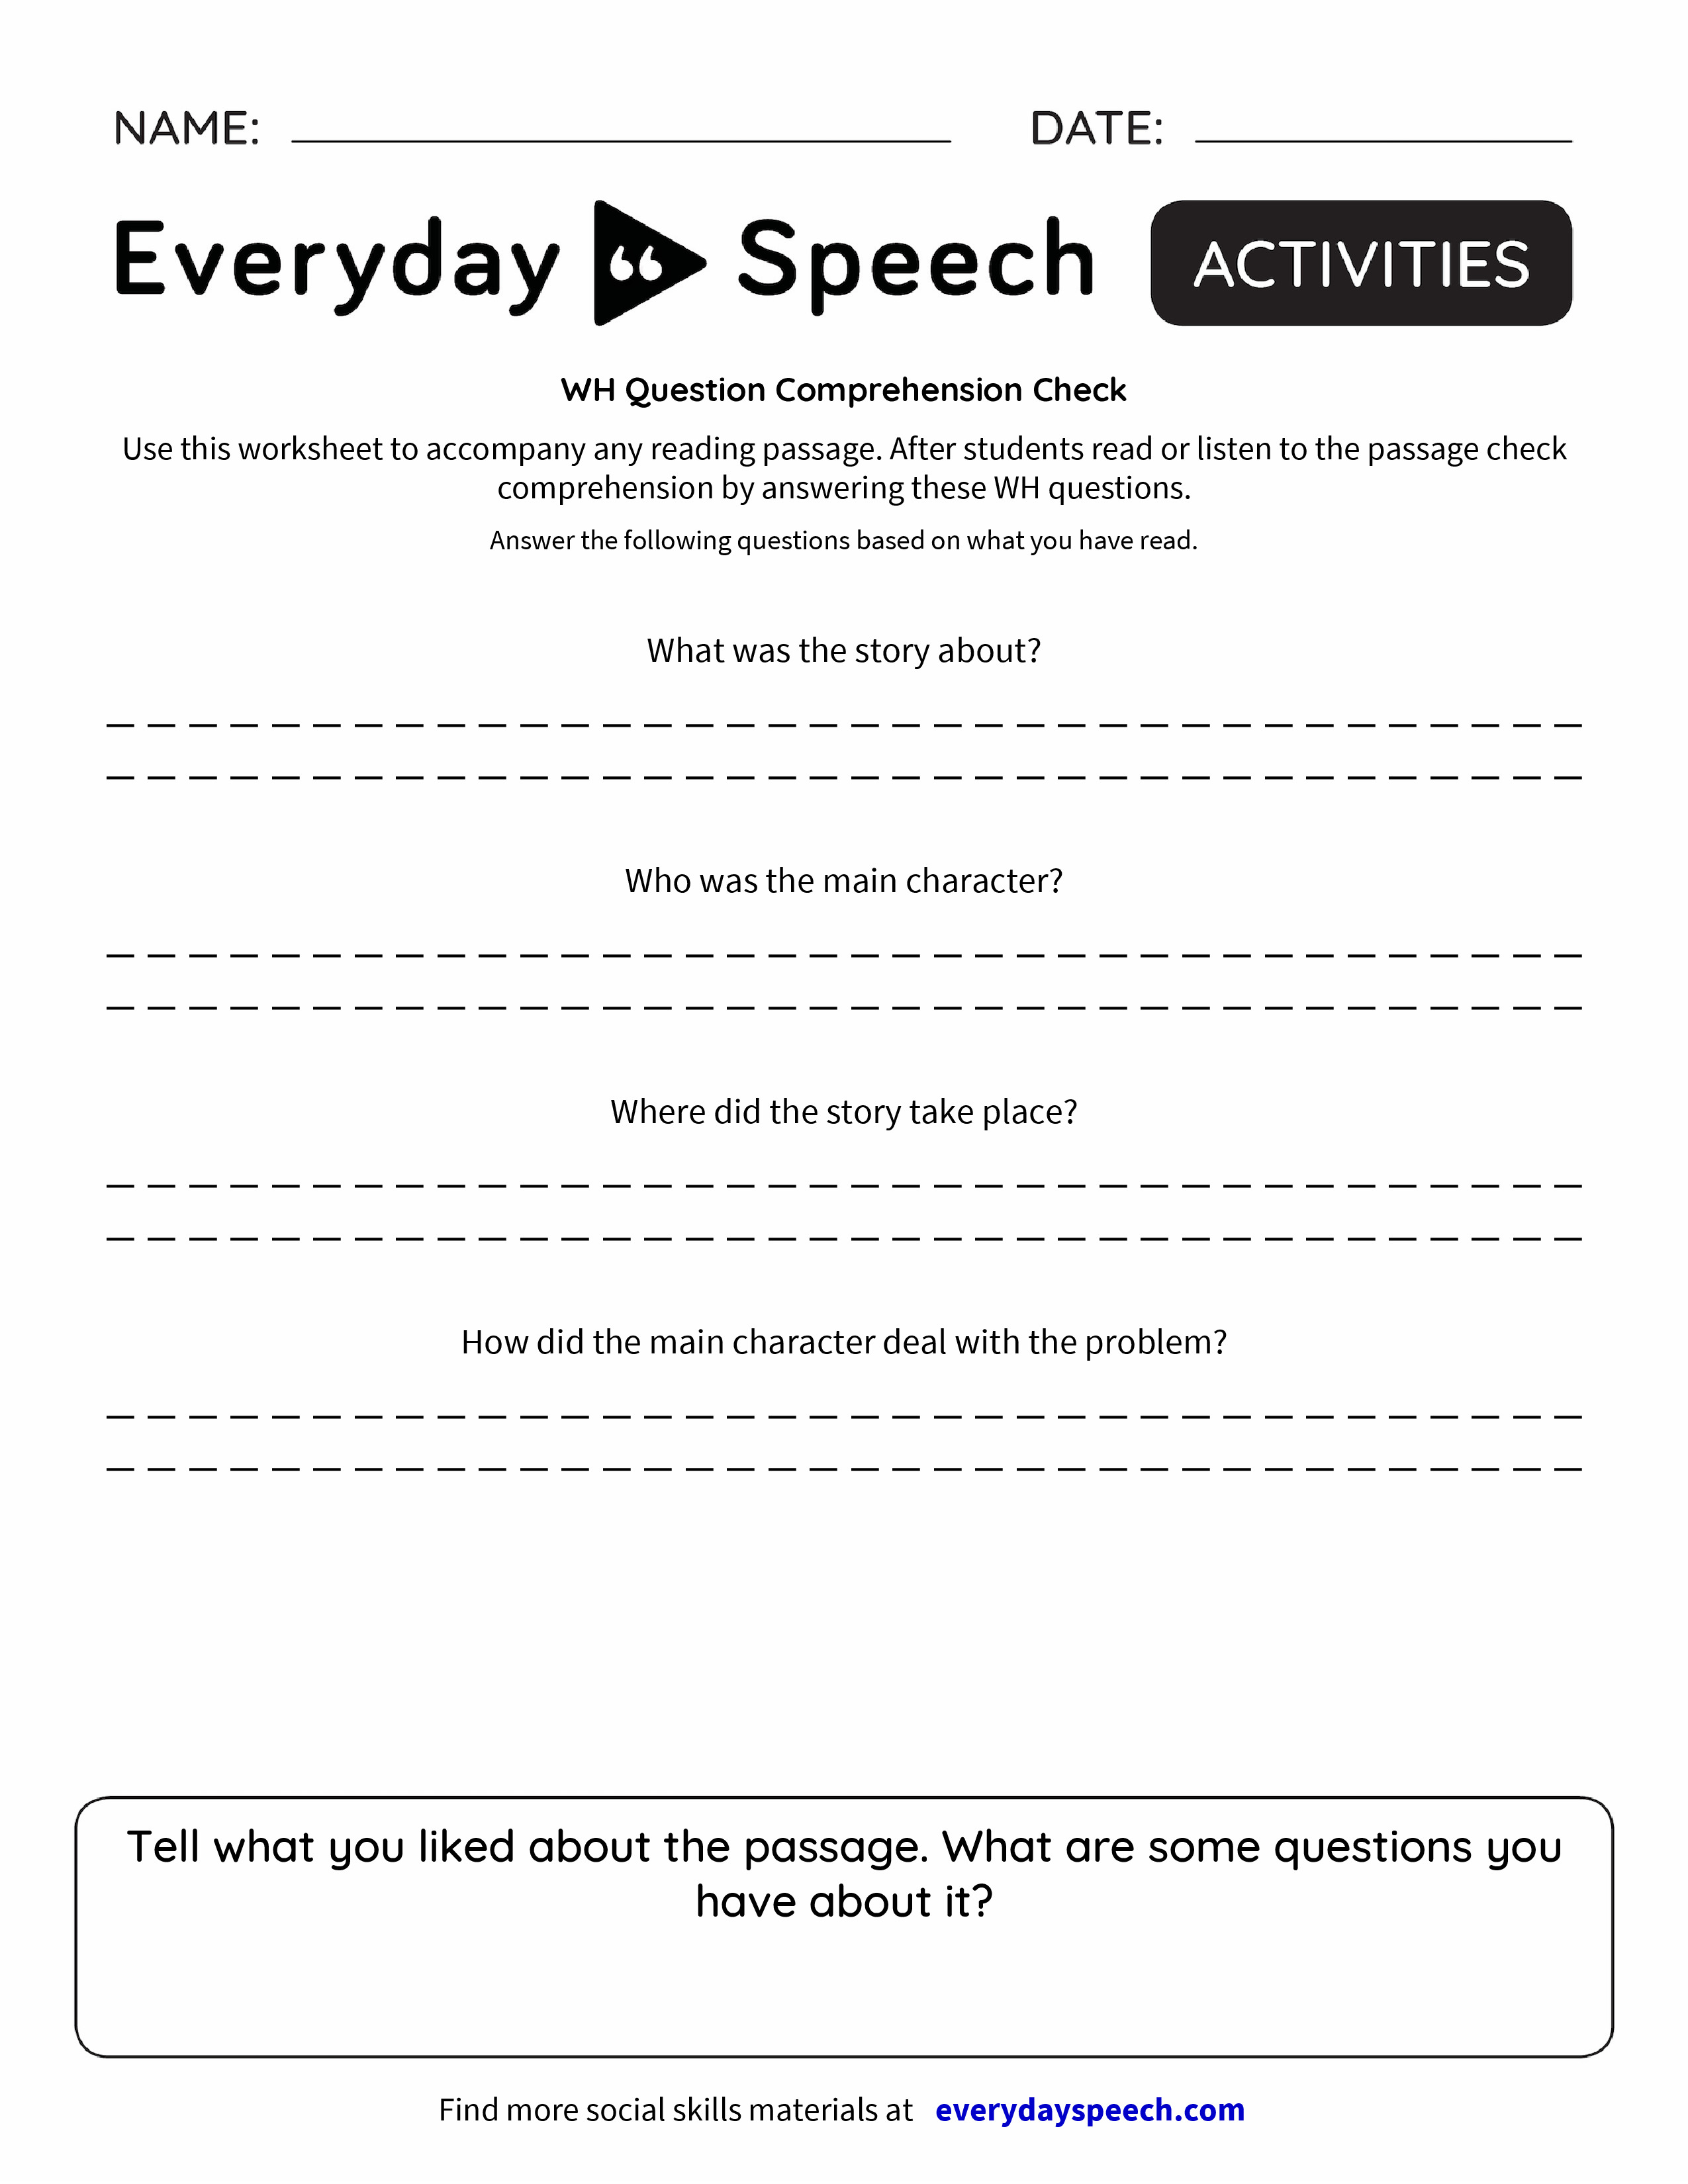 Worksheet Comprehension Check Worksheets wh question comprehension check everyday speech check